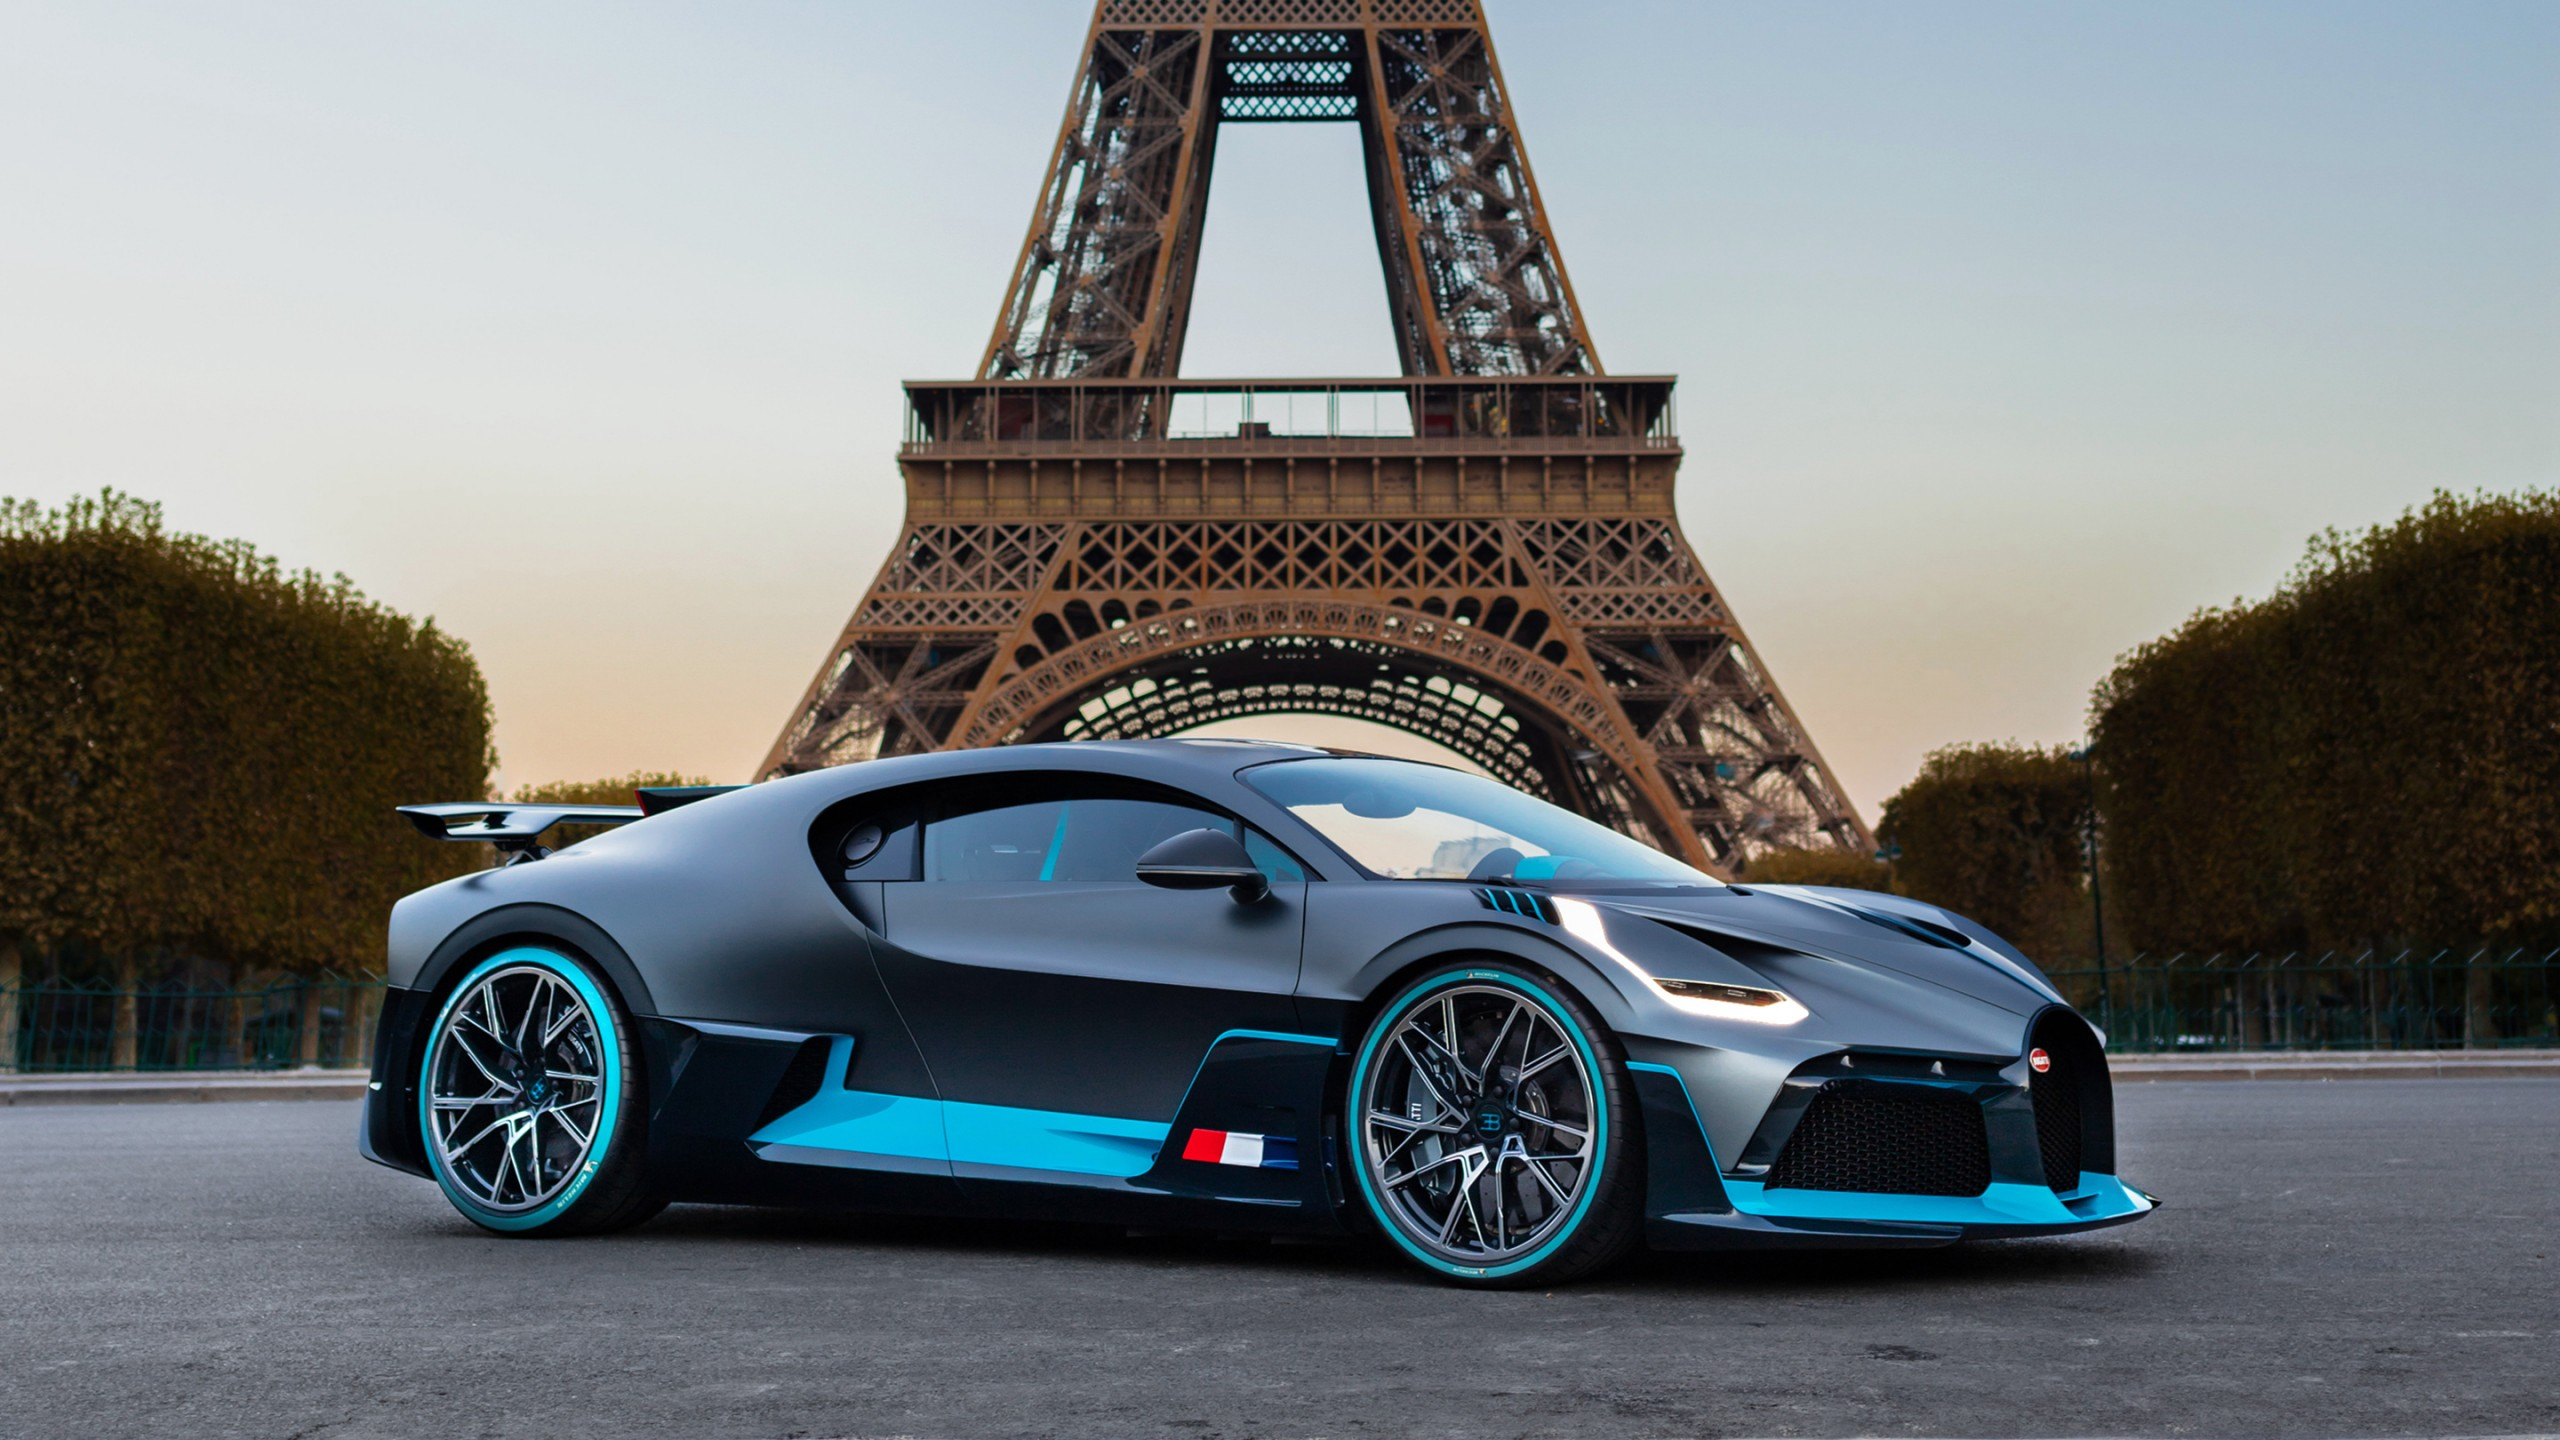 Car Wallpapers Backgrounds Hd: Bugatti Divo In Paris Wallpaper